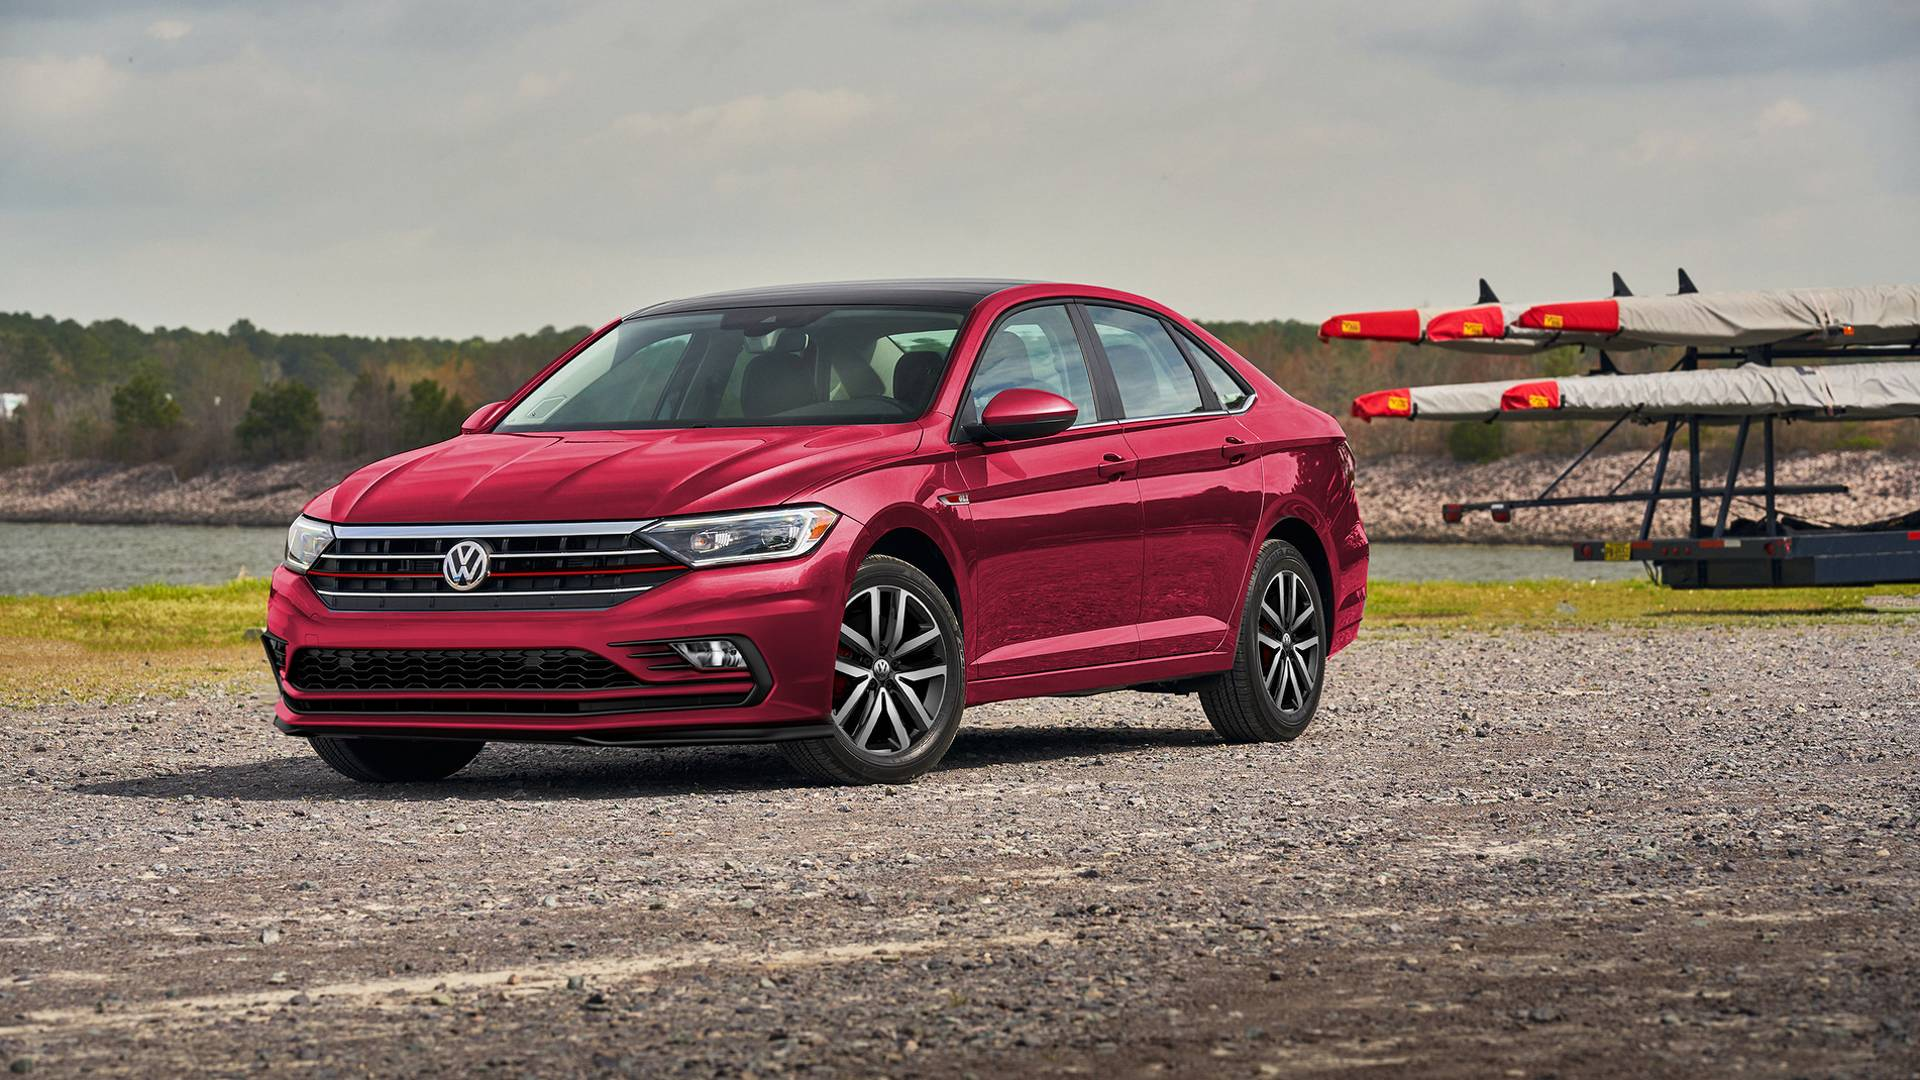 Vw Jetta Gli Rendering Shows The Affordable Sports Sedan We Re